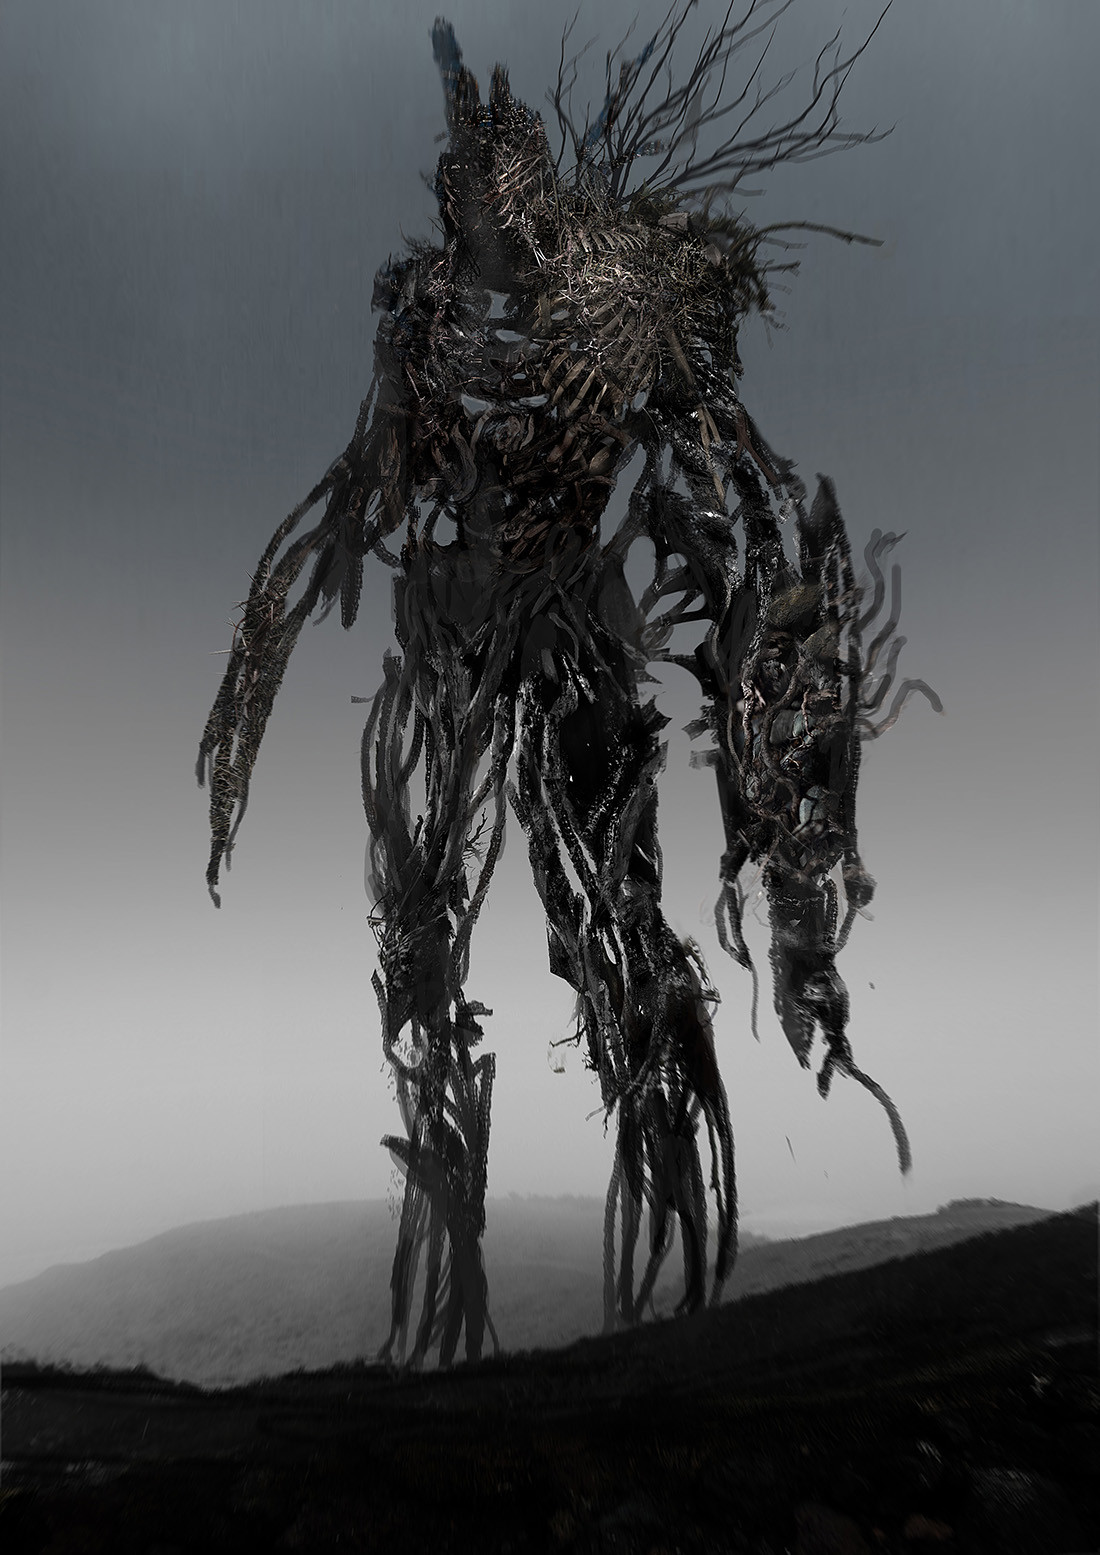 early sentinel concept done for The last Witch Hunter